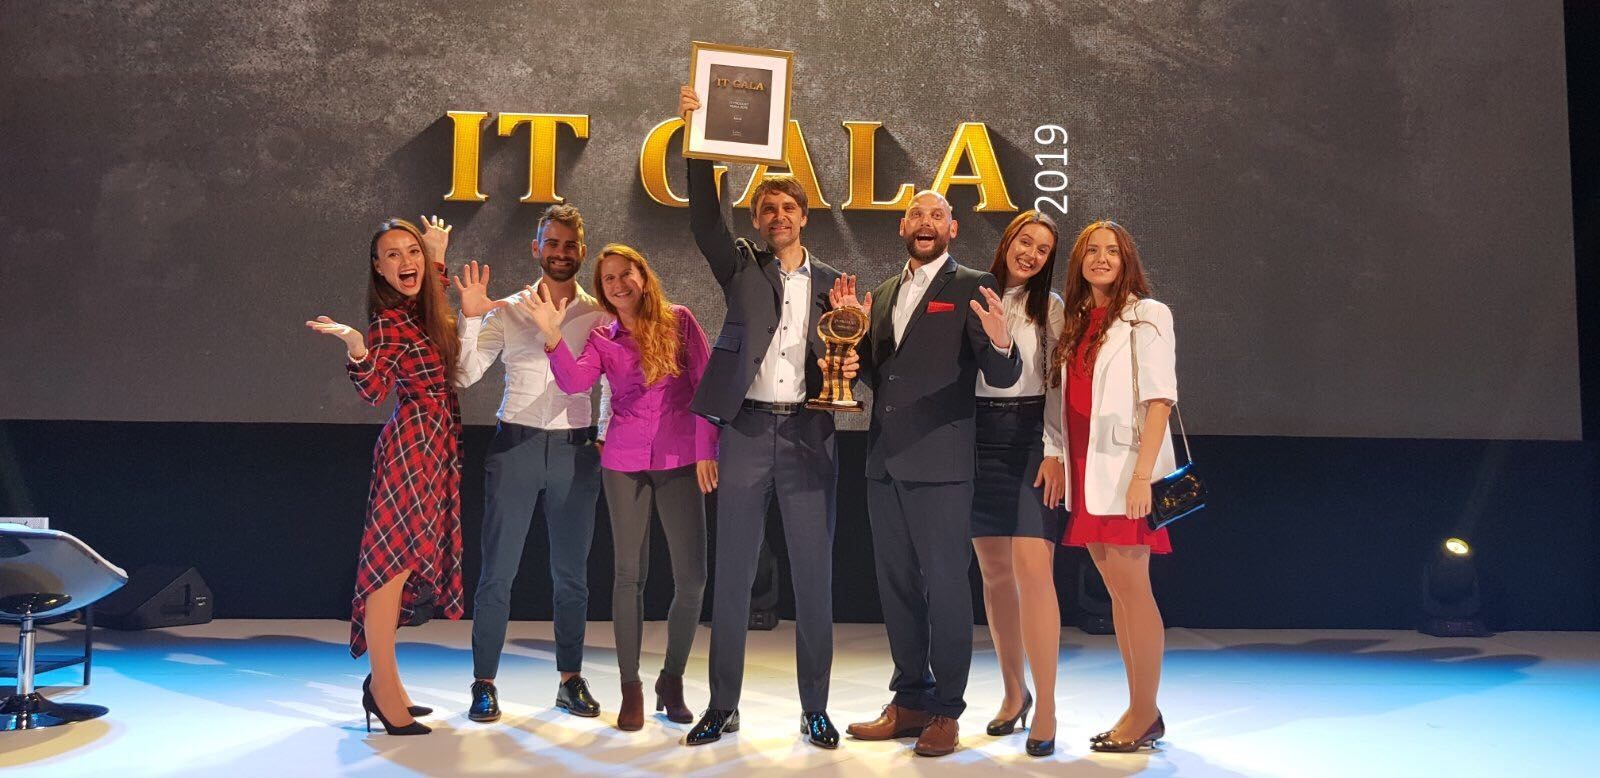 A New Investment and the IT Product of the Year IT GALA the team